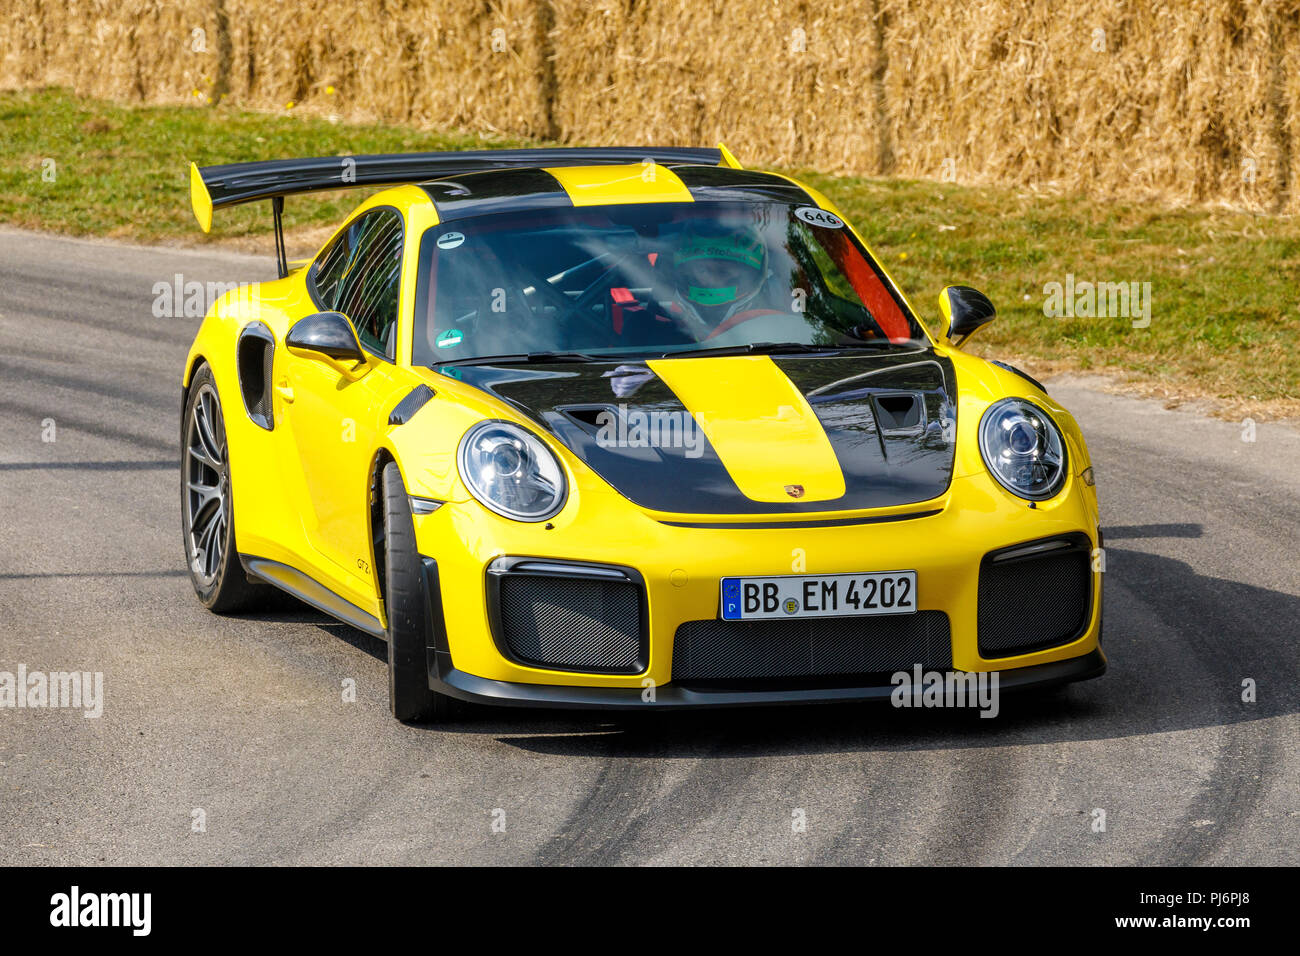 2018 Porsche 911 Gt2 Rs On It S Demonstration Hillclimb Run At The 2018 Goodwood Festival Of Speed Sussex Uk Stock Photo Alamy